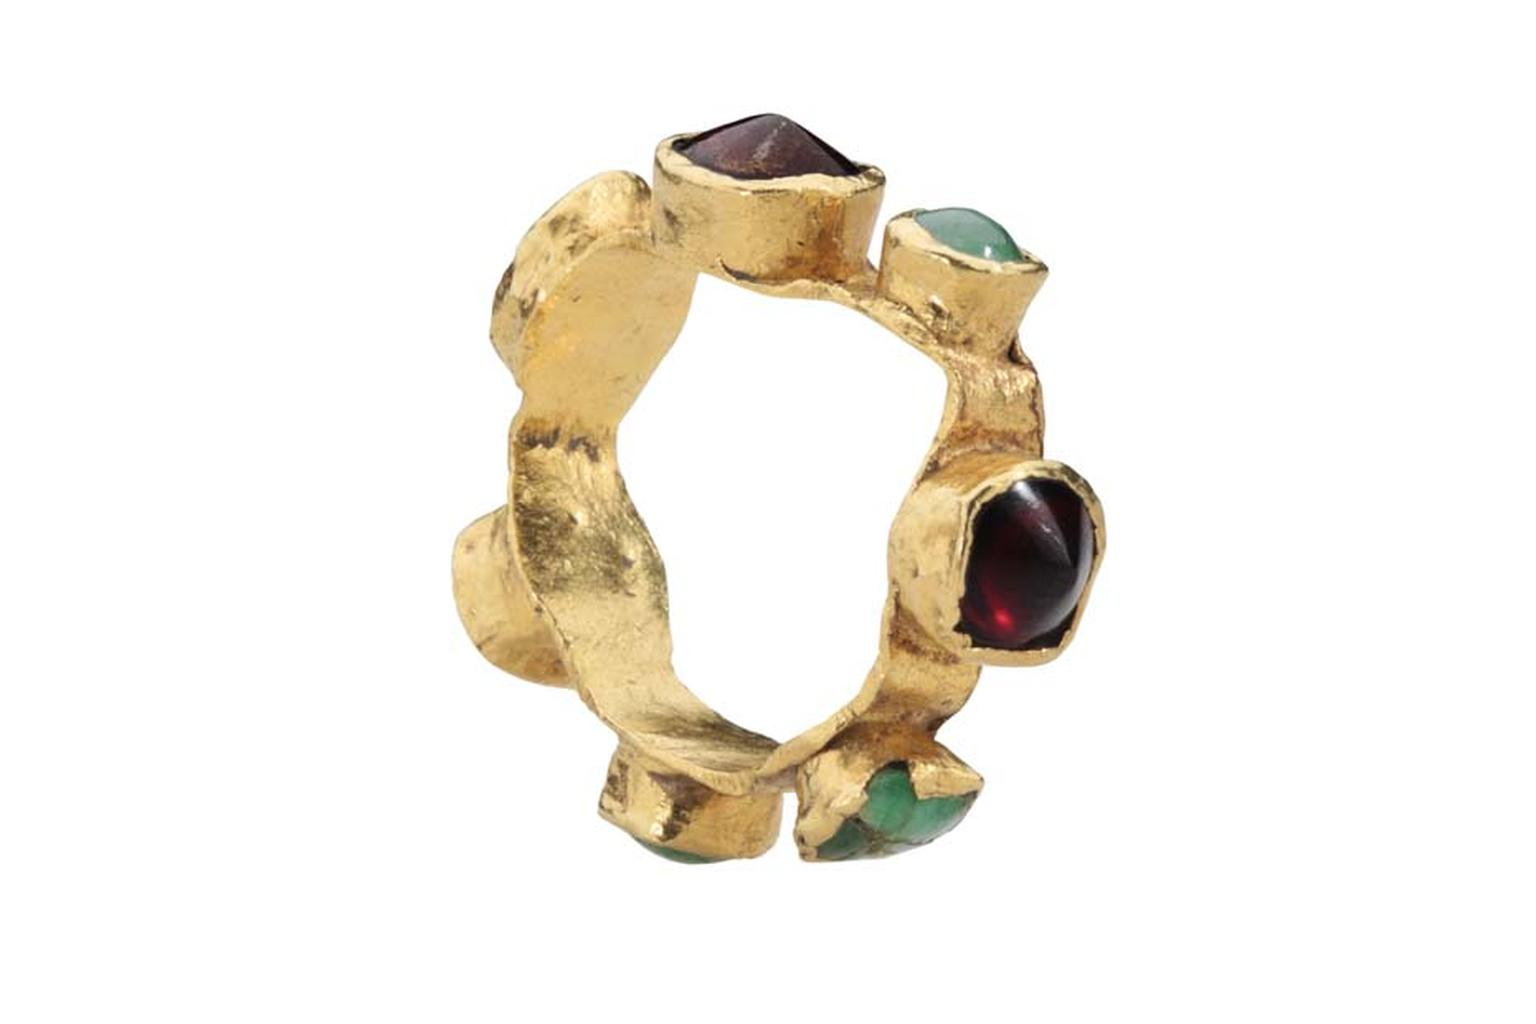 Les Enluminures gold Roman ring with cabochon garnets and jade.